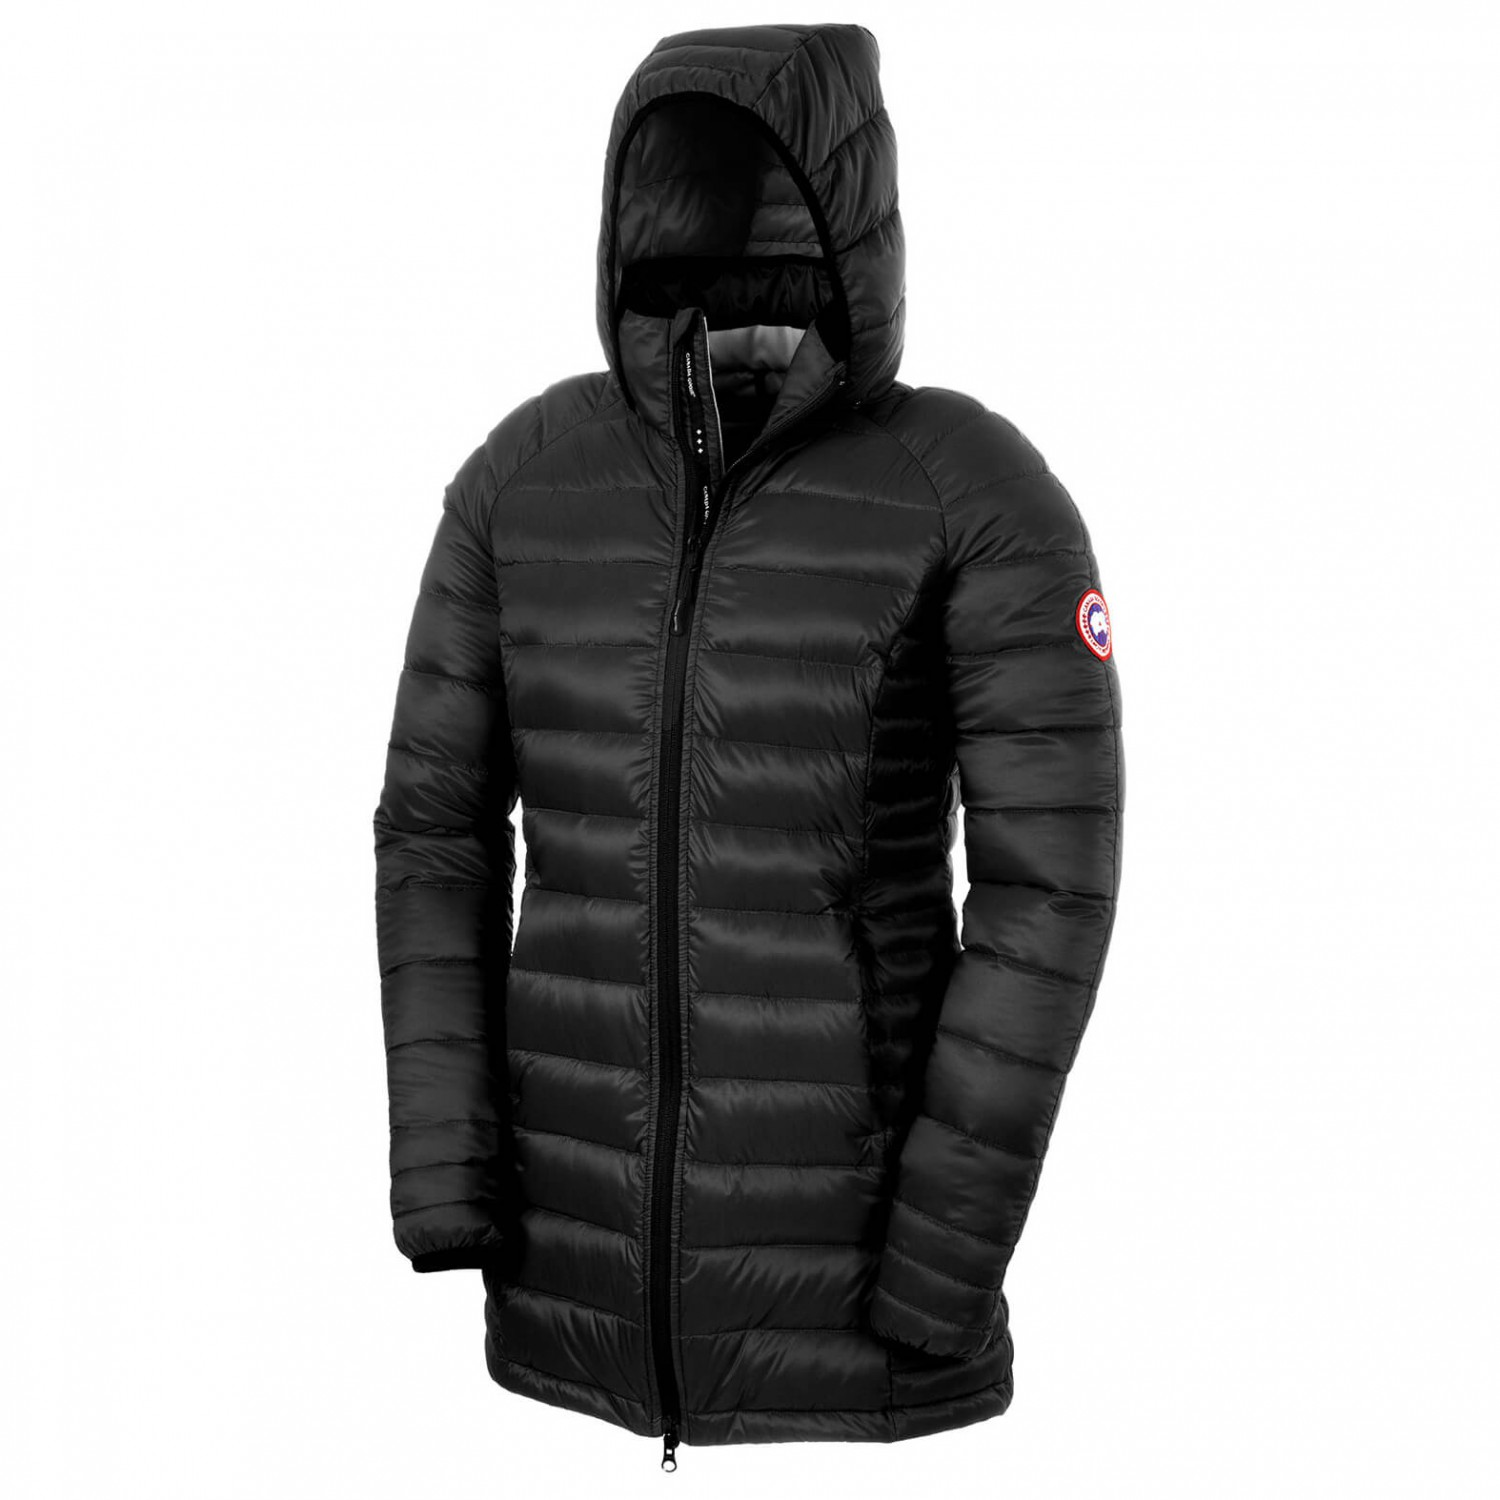 7d12b45e5eb Canada Goose - Women's Brookvale Hooded Coat - Winter jacket - Black /  Graphite | XXS